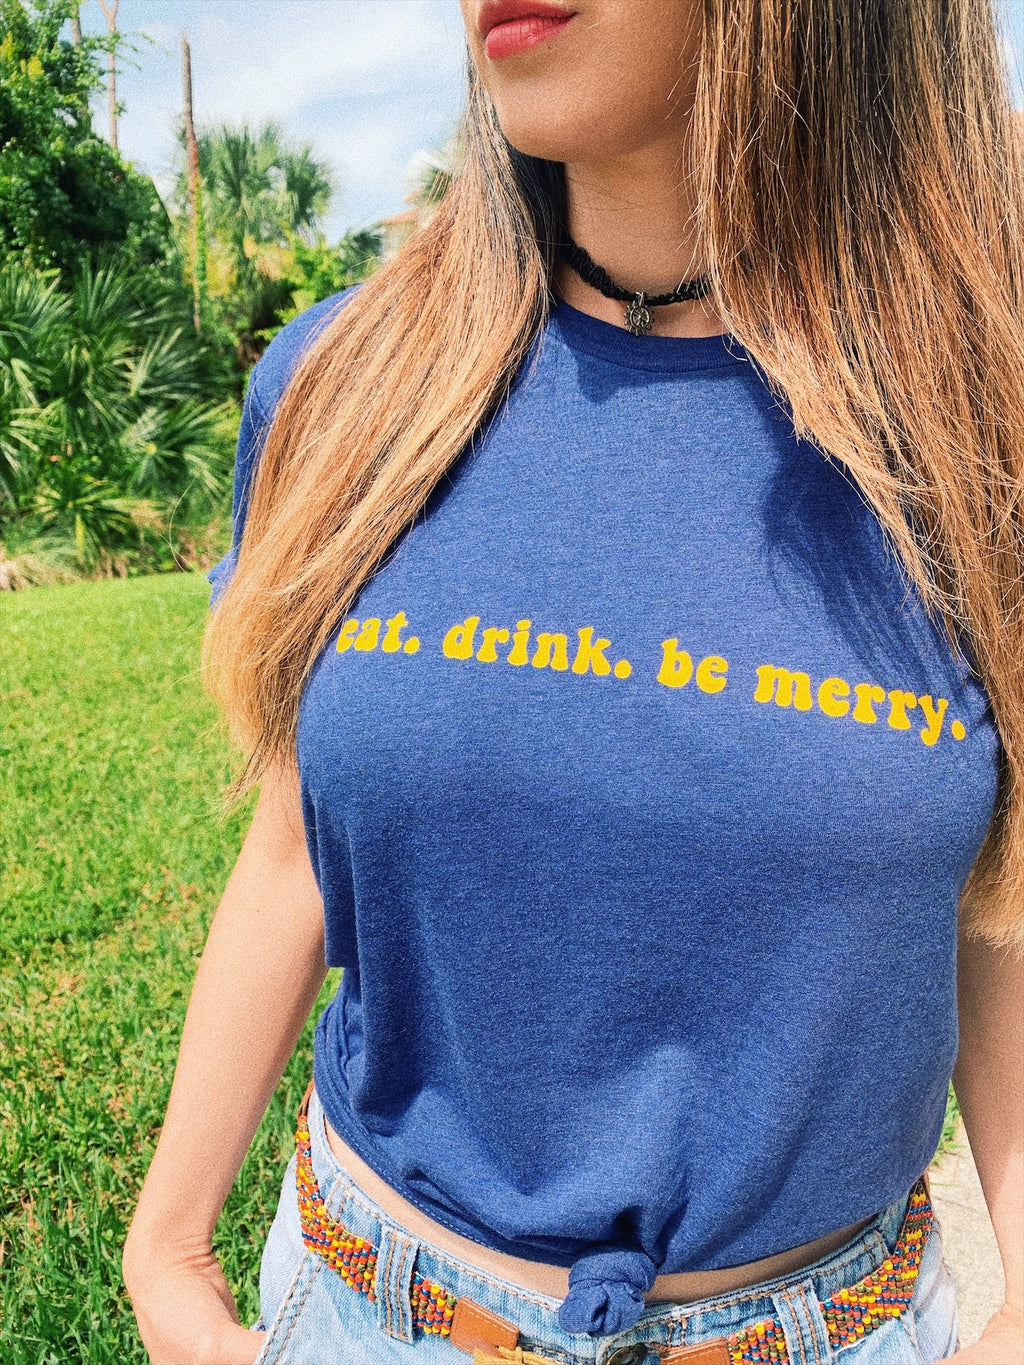 Eat drink and be merry! The perfect Dave Matthews Band Shirt to wear to the concert!